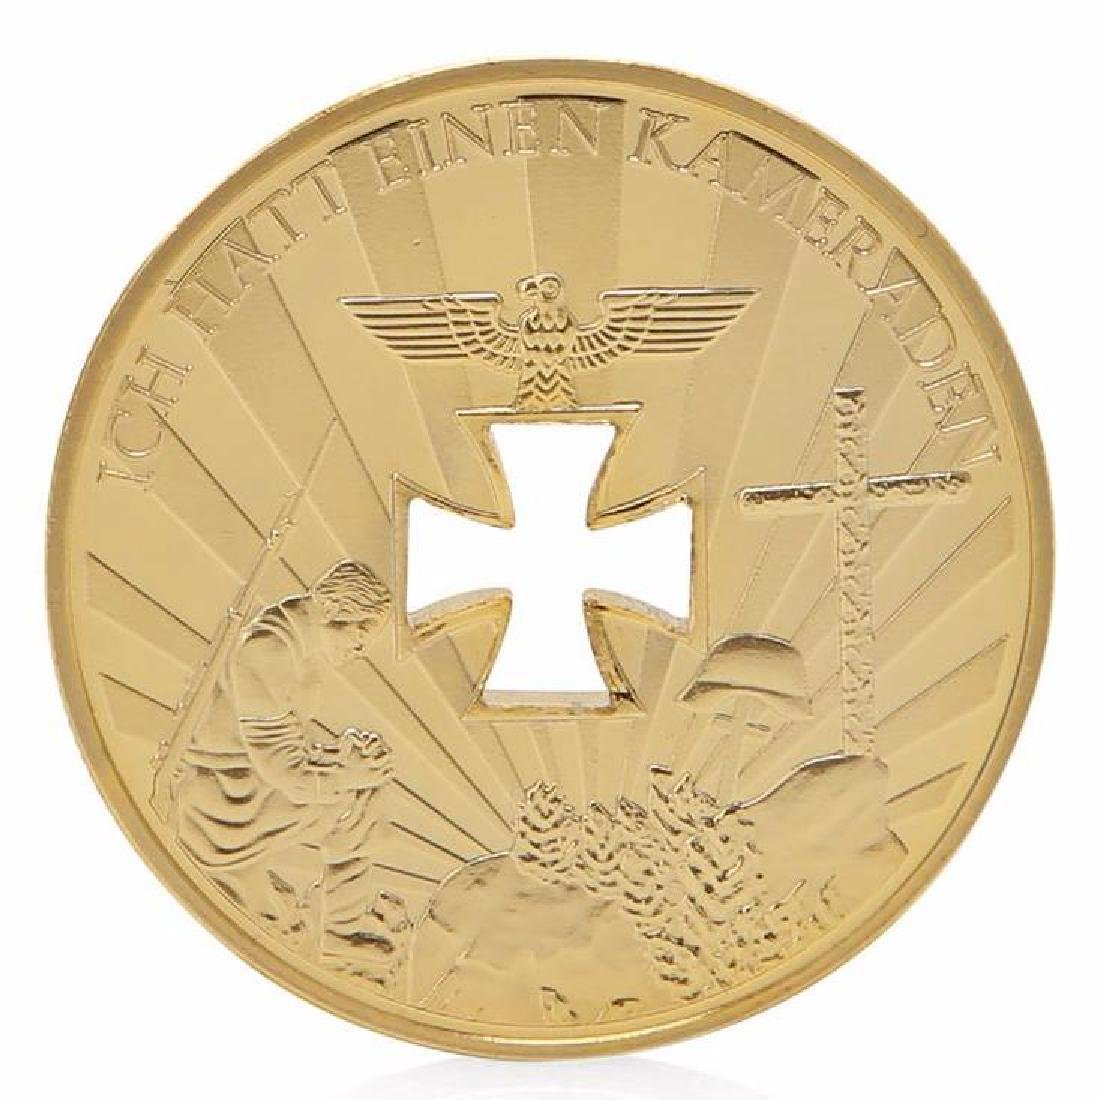 World War I & II Gold Clad Commemoration Coin